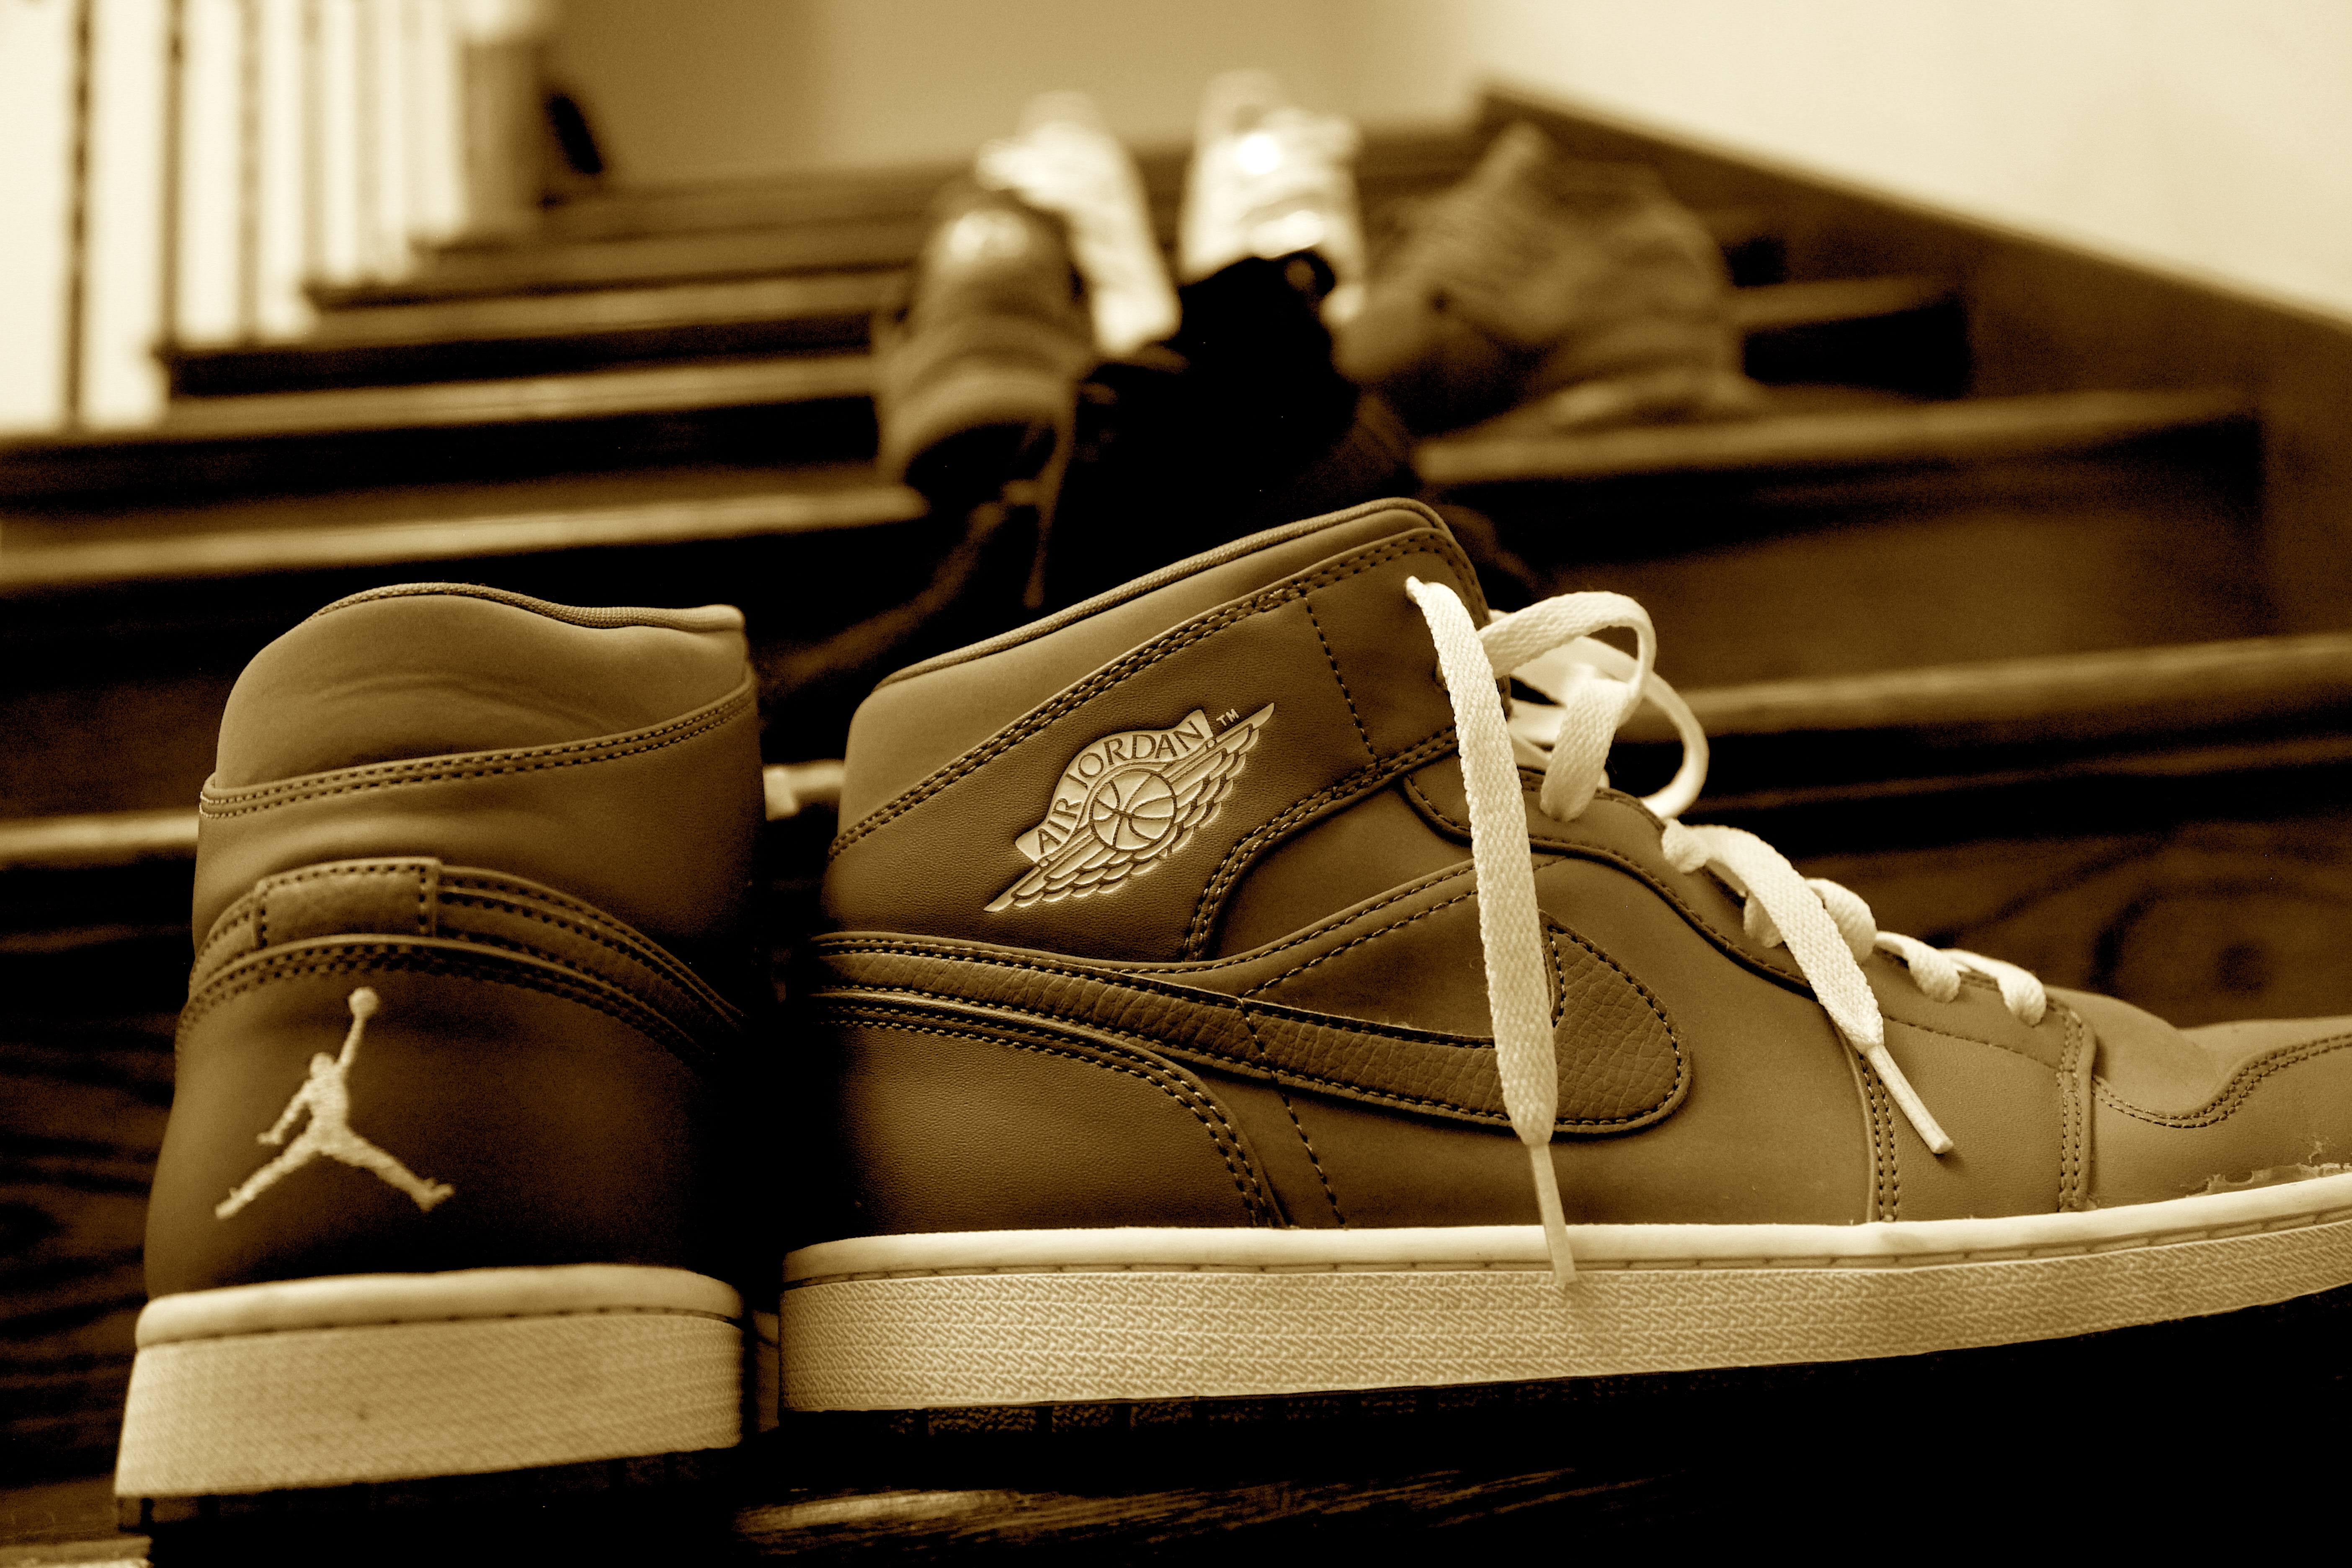 ccf6c8b9690d Sneakerhead culture sparks rising interest in uncommon shoes – The ...